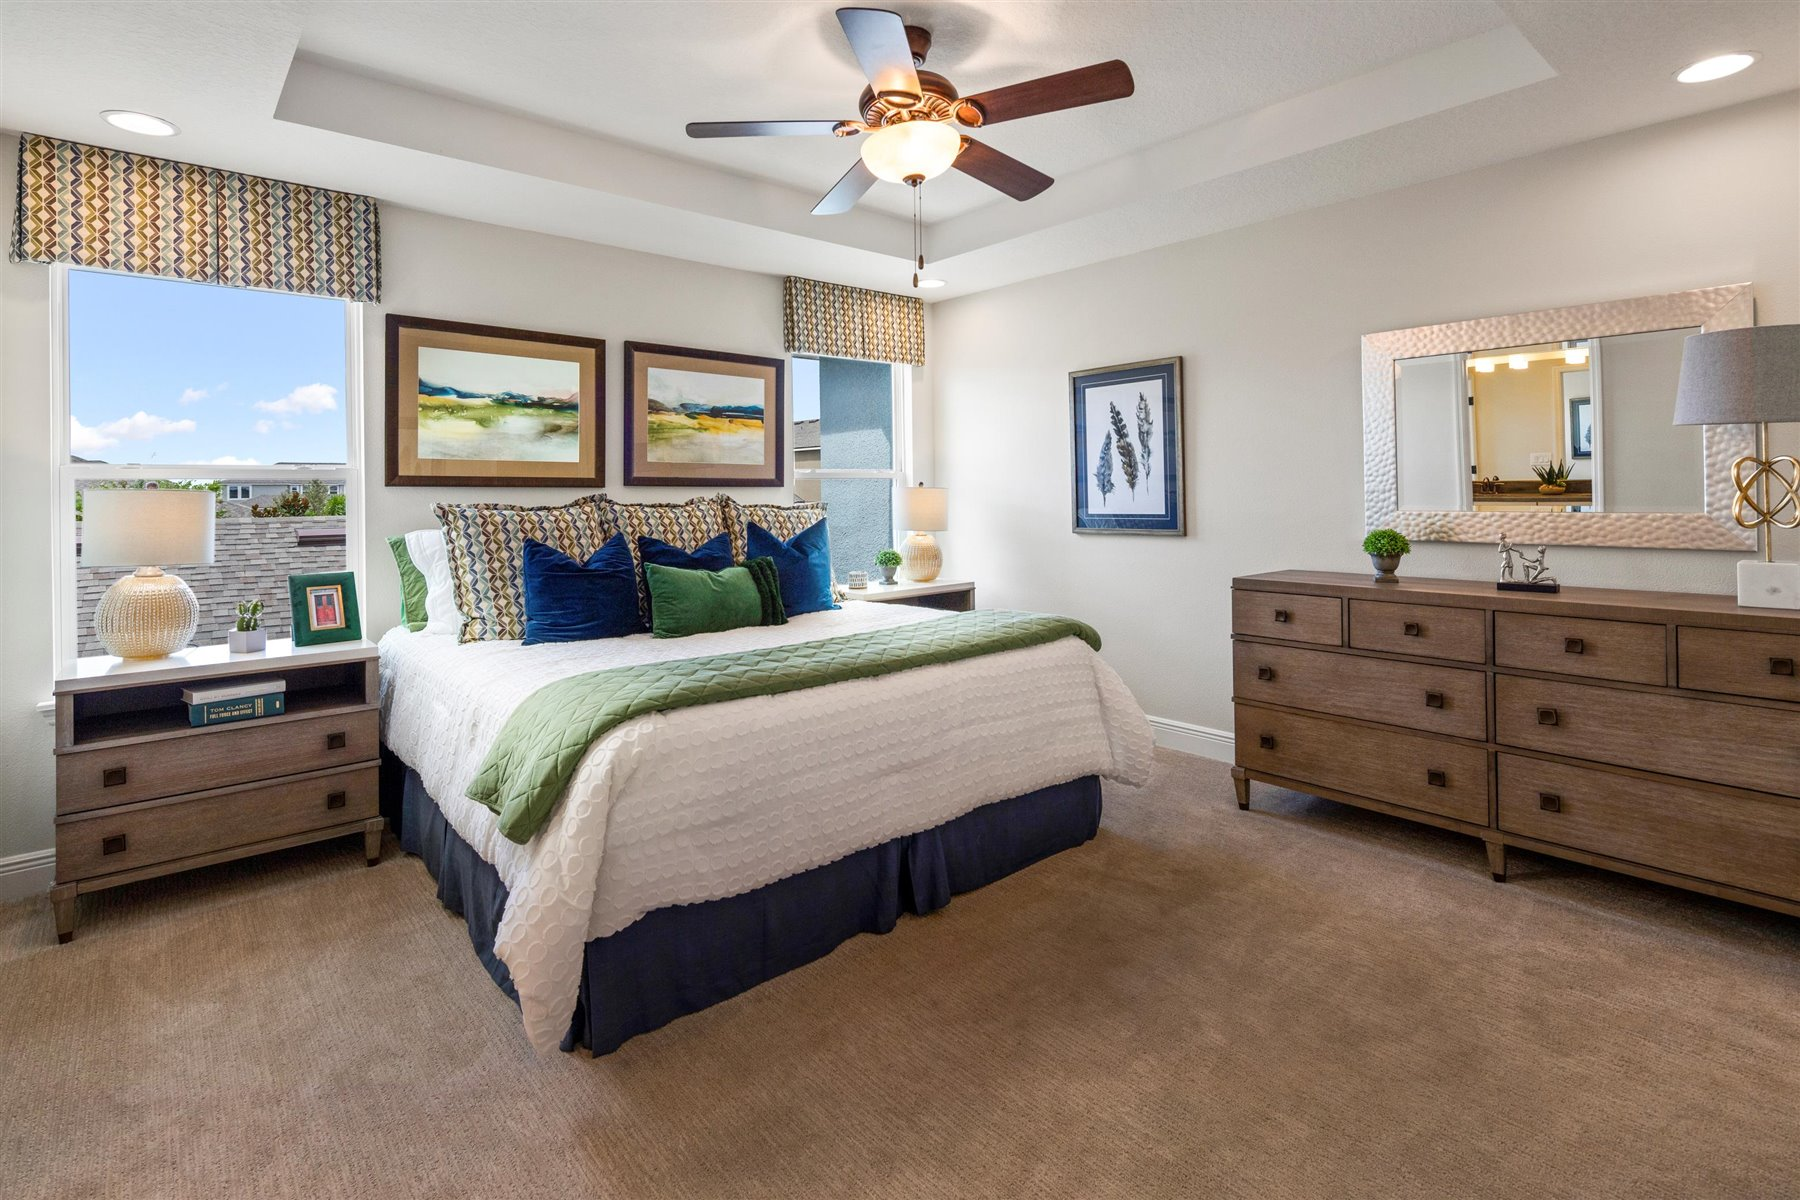 Arcadia Plan Bedroom at Hawksmoor in Winter Garden Florida by Mattamy Homes